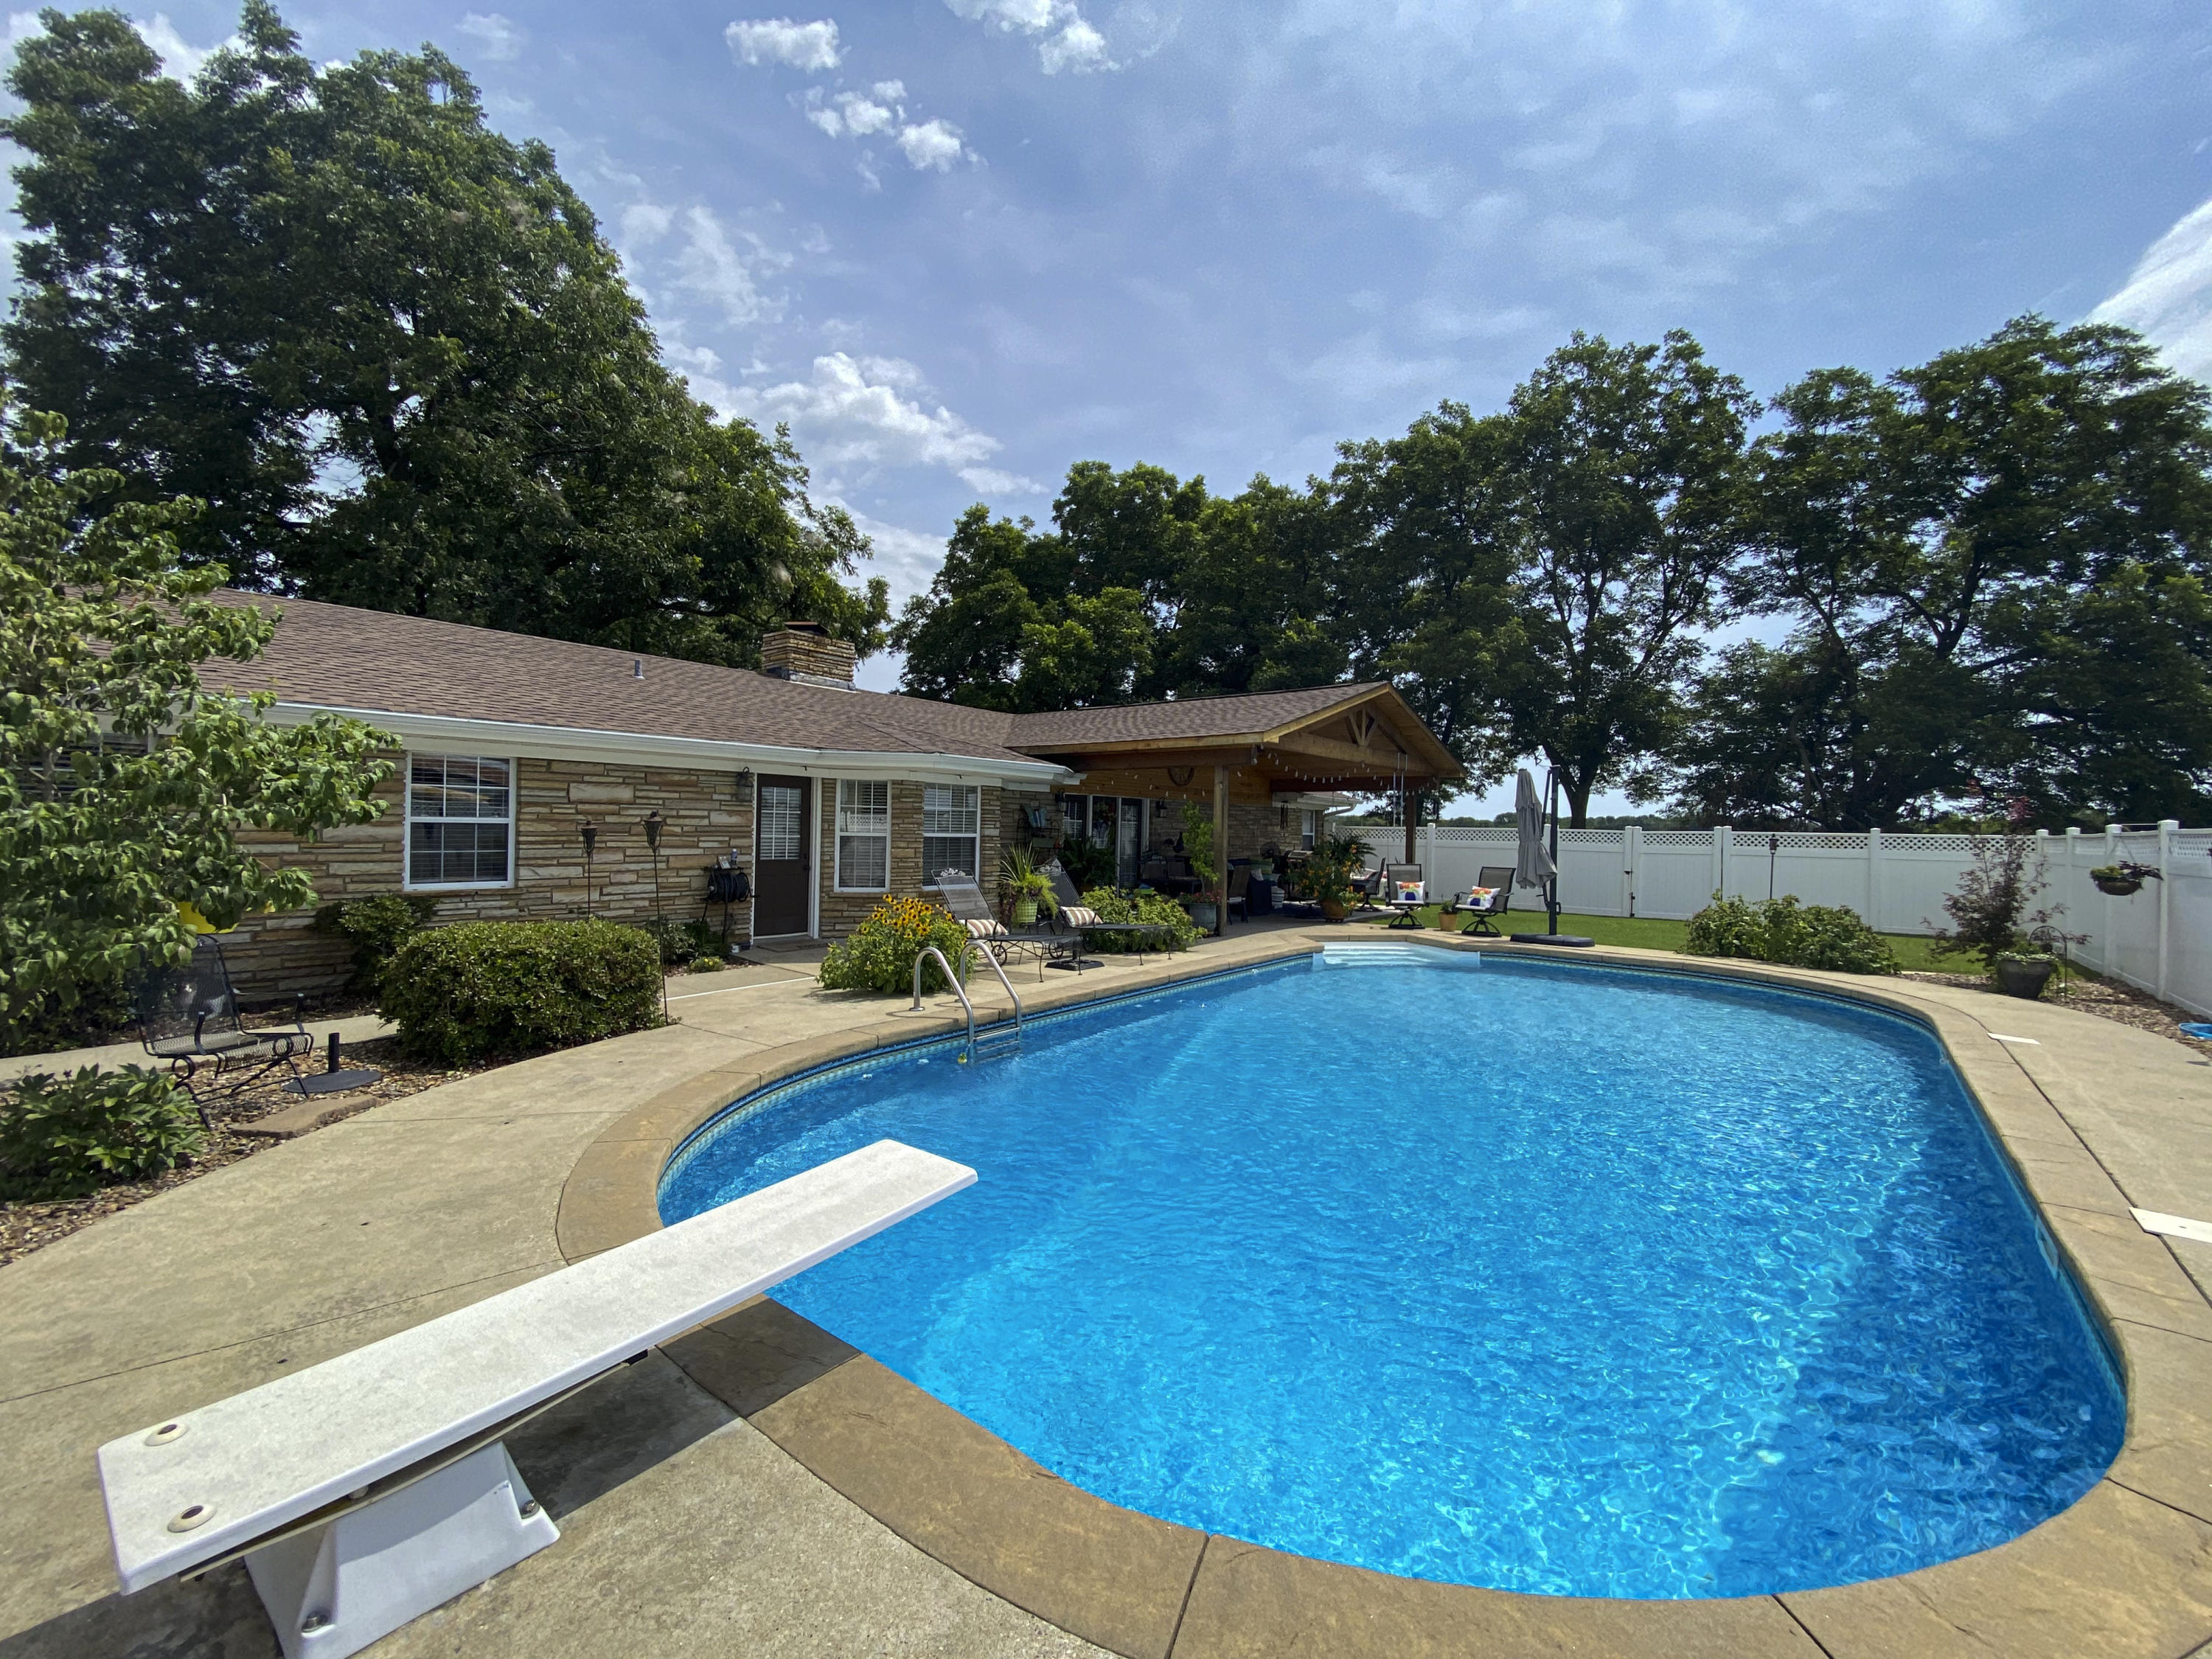 Large photo 3 of home for sale at 1437 Hudson Road, Pottsville, AR